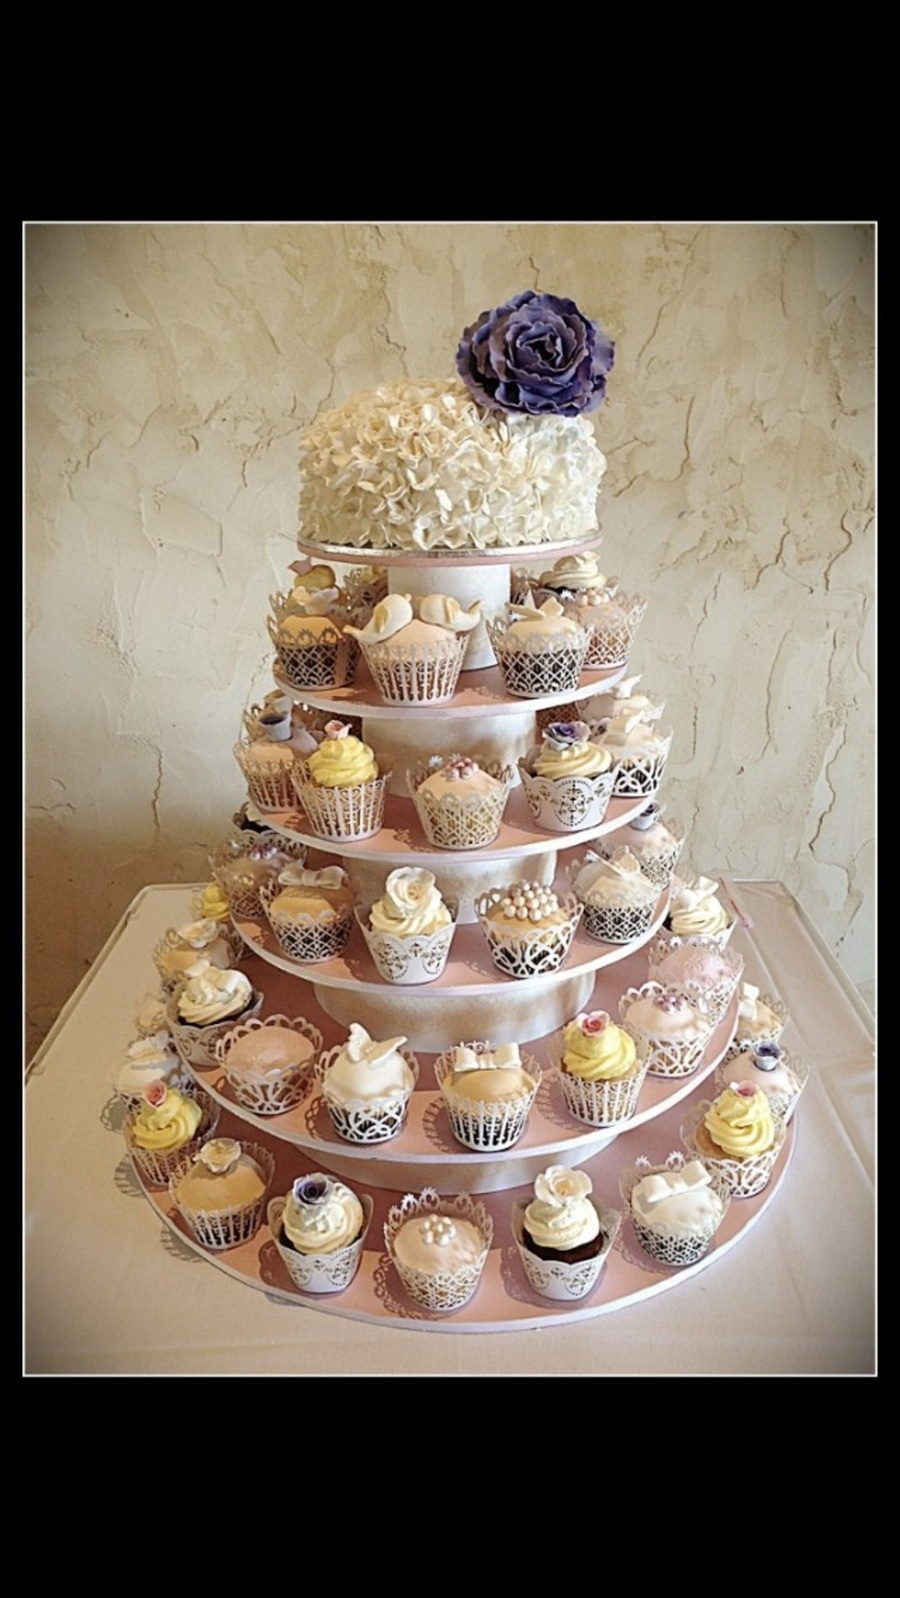 Vintage Wedding Tower  on Cake Central